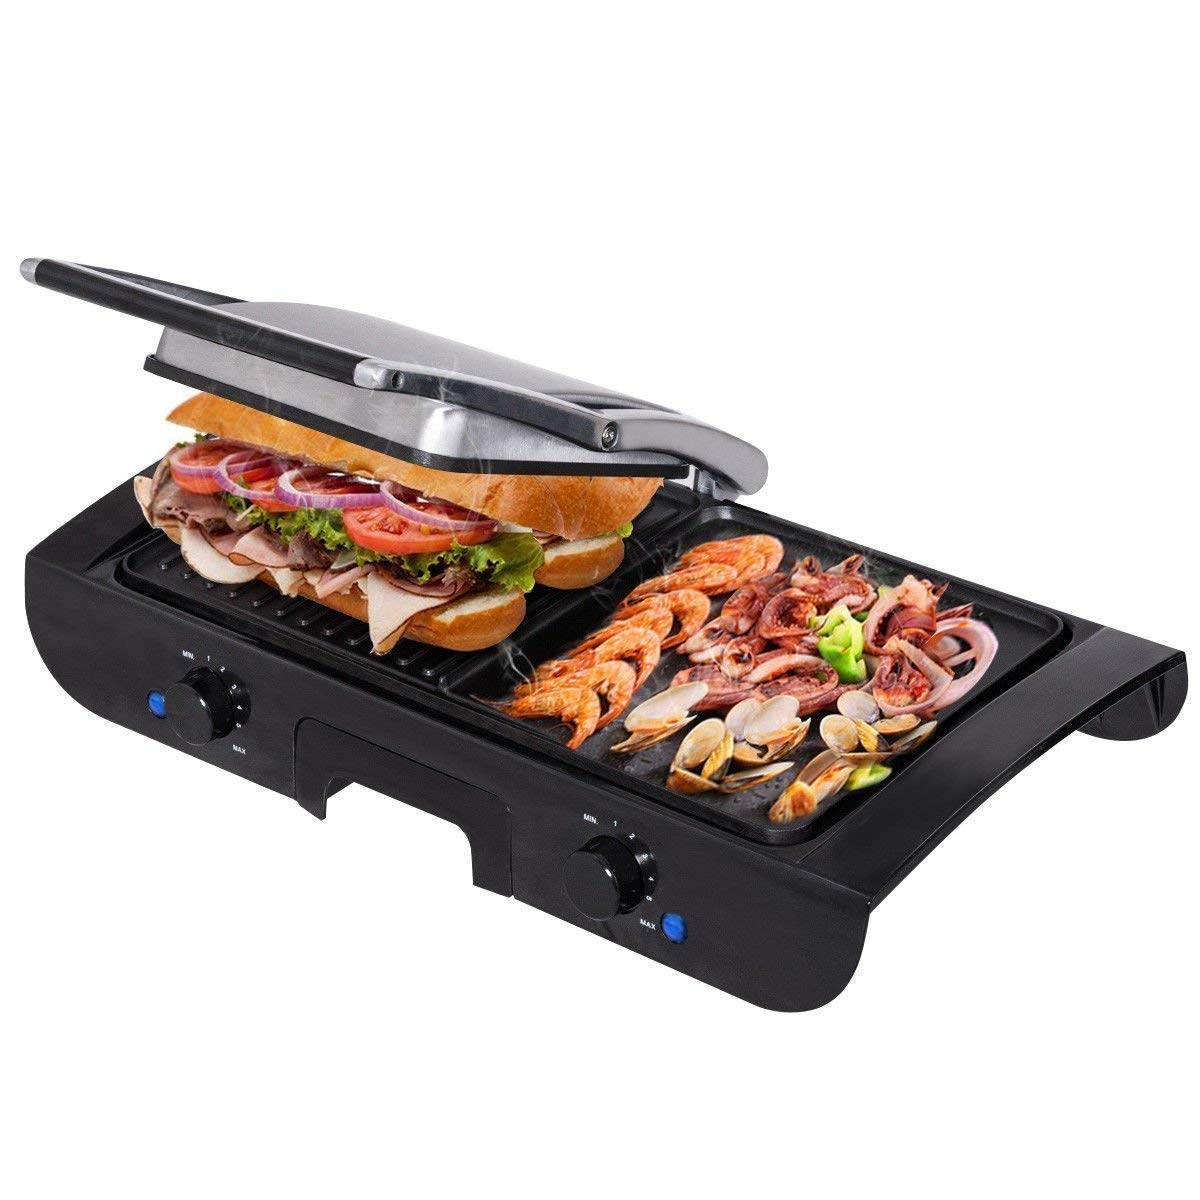 Costzon Grill Griddle, 2-in-1 Sandwich Maker with Lid, 1500W Smokeless Non-Stick Indoor Grill with Two Temperature Control & Indicator Light